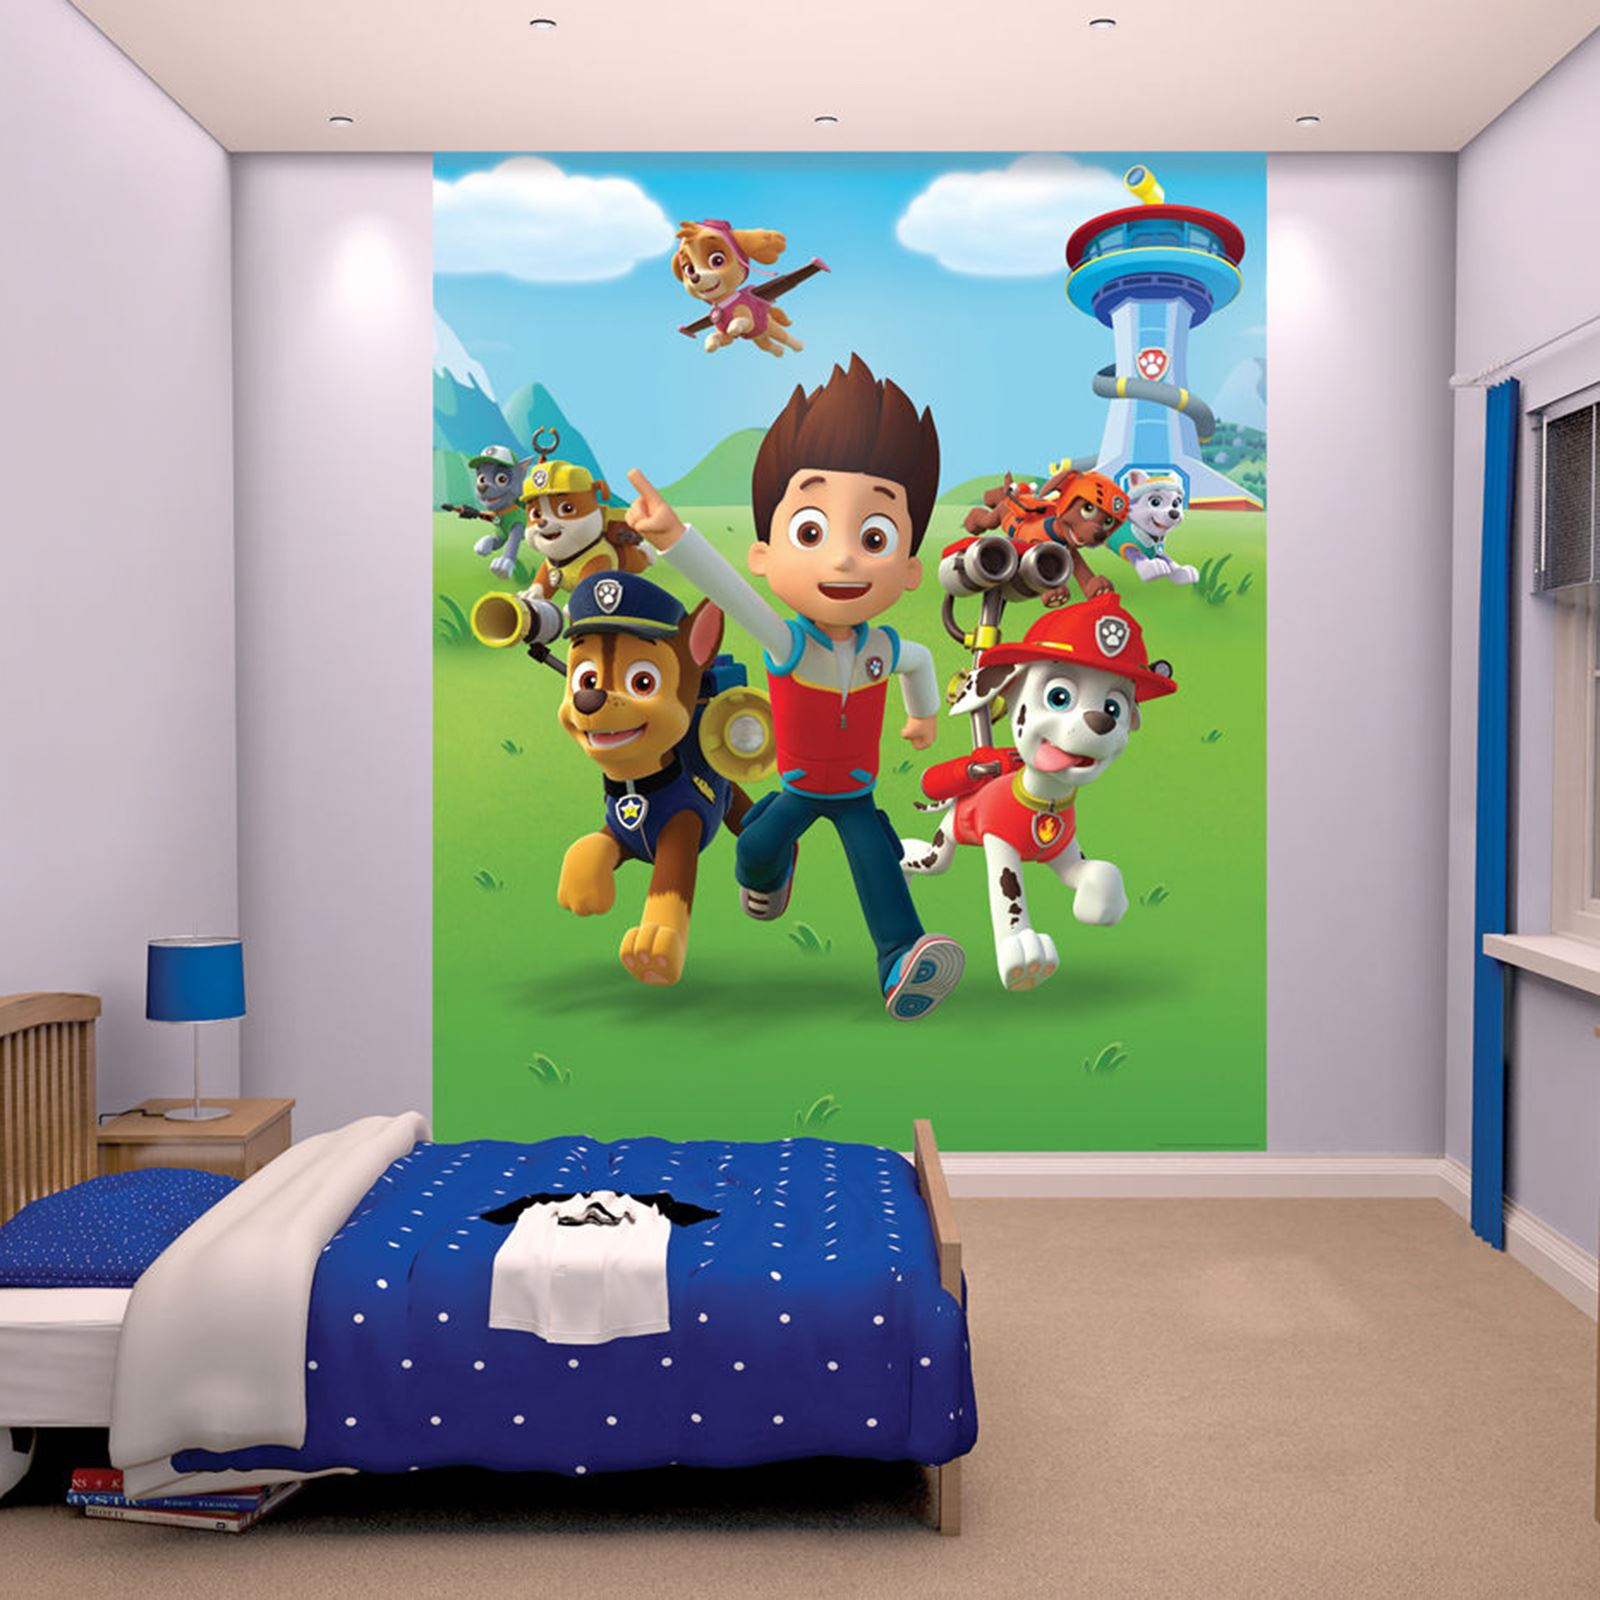 WALLTASTIC WALLPAPER WALL MURALS KIDS BEDROOM PEPPA AVENGERS